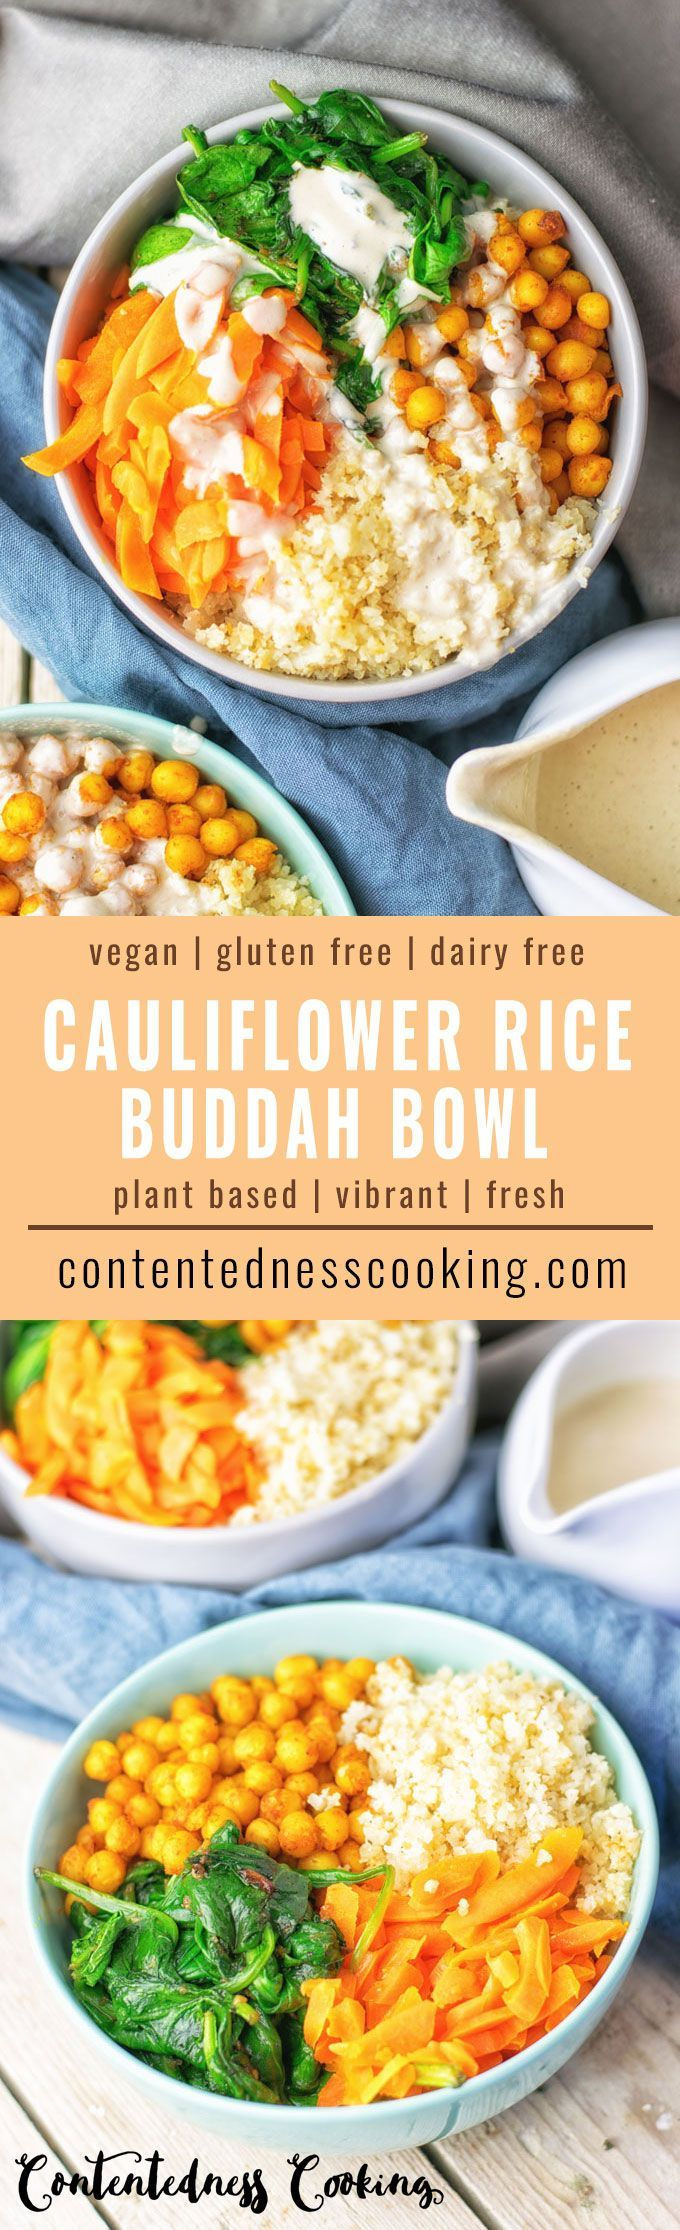 My new Cauliflower Rice Buddha Bowl is similar to traditional Buddha bowls but with a low carb twist. And it's vegan and gluten free, too, made from just 6 ingredients. It comes with great flavor of Tandoori chickpeas, combined with fresh vegetables, and my amazing Roasted Garlic Tahini Sauce. I promise, it's the most delicious plant based meal in a bowl.